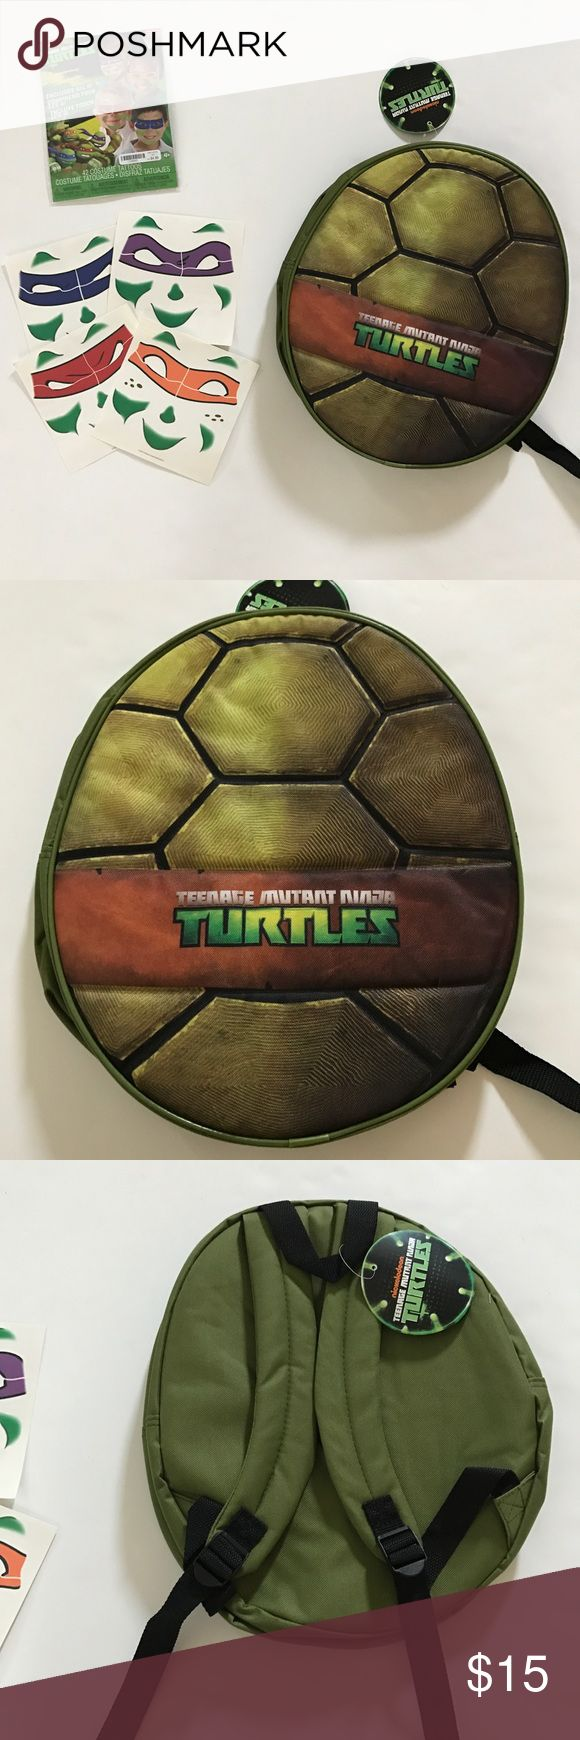 New With Tags Nickelodeon Ninja Turtles School Bag Fun Bundle for Back To School! Four Ninja Turtle Face Mask tattoos included! Brand new nickelodeon backpack with tags! Super cute ninja turtle shell. Perfect size for books!  *SMOKE FREE AND PET FREE HOME  *Extremely quick shipping   *Thank you for your support! Nickelodeon Accessories Bags